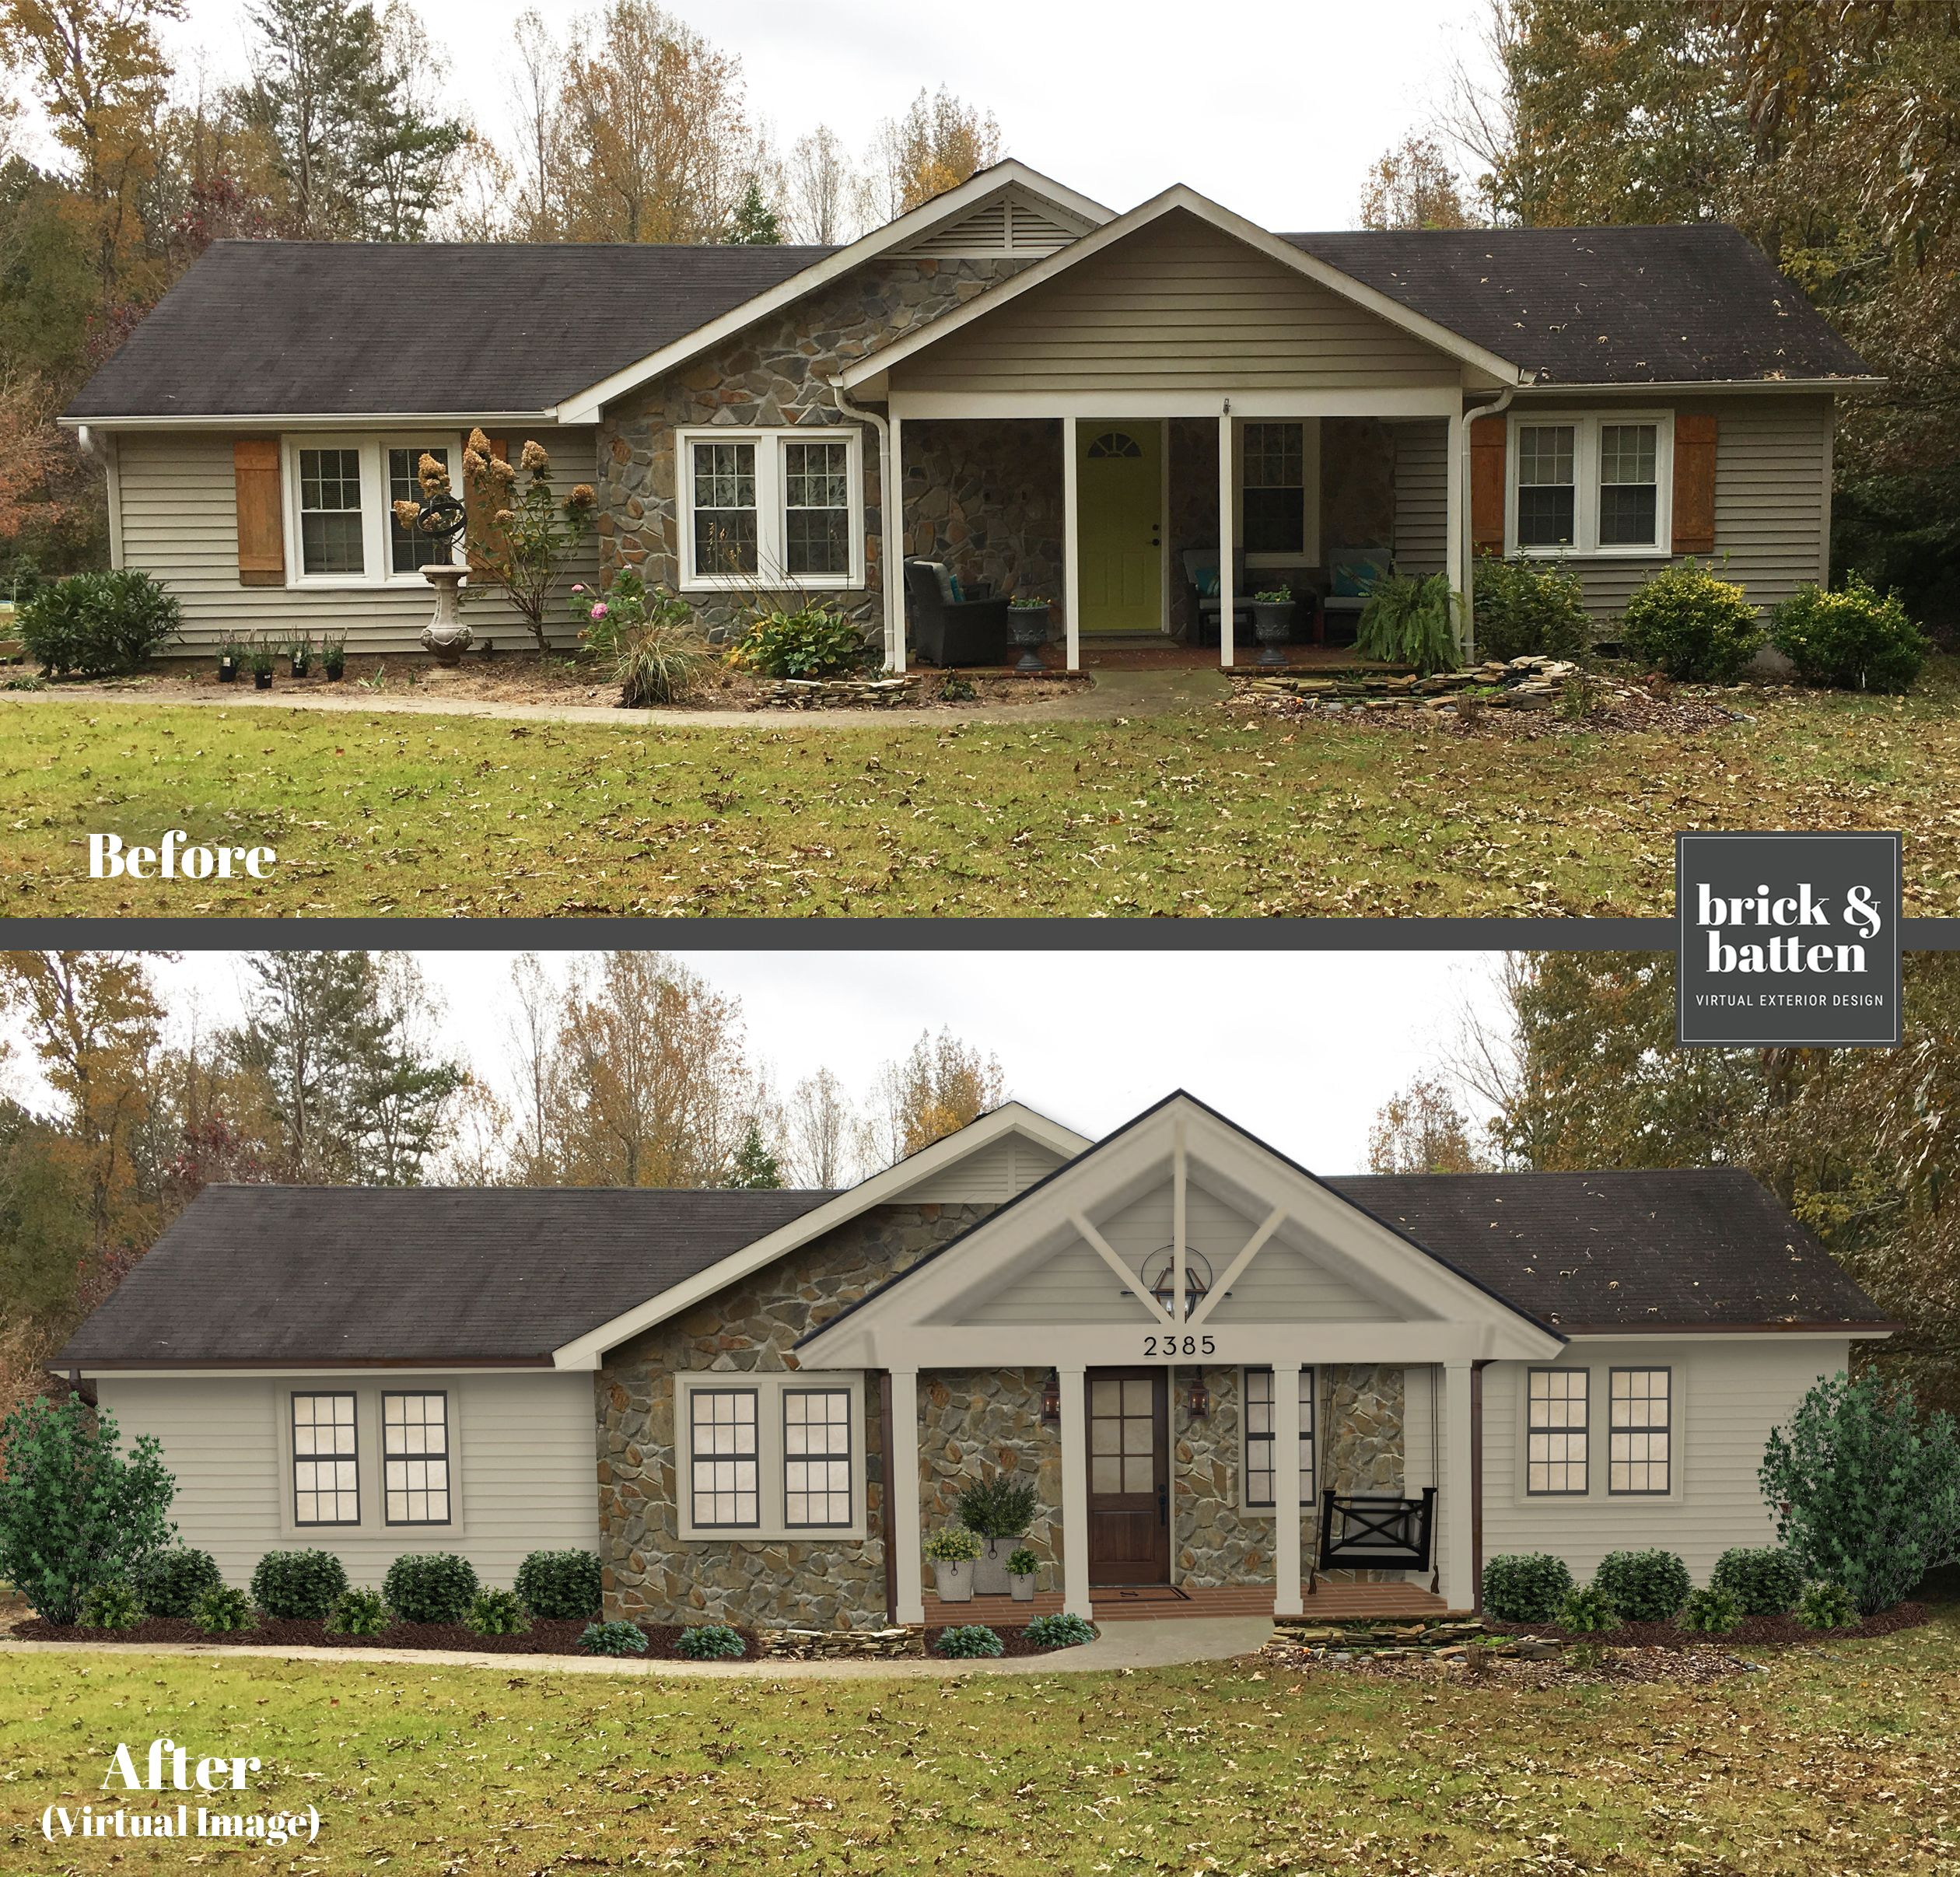 This 1940s Ranch Got A Brickandbatten Makeover We Removed The Shutters As They Weren T Arc Home Exterior Makeover House Paint Exterior House Plans Farmhouse